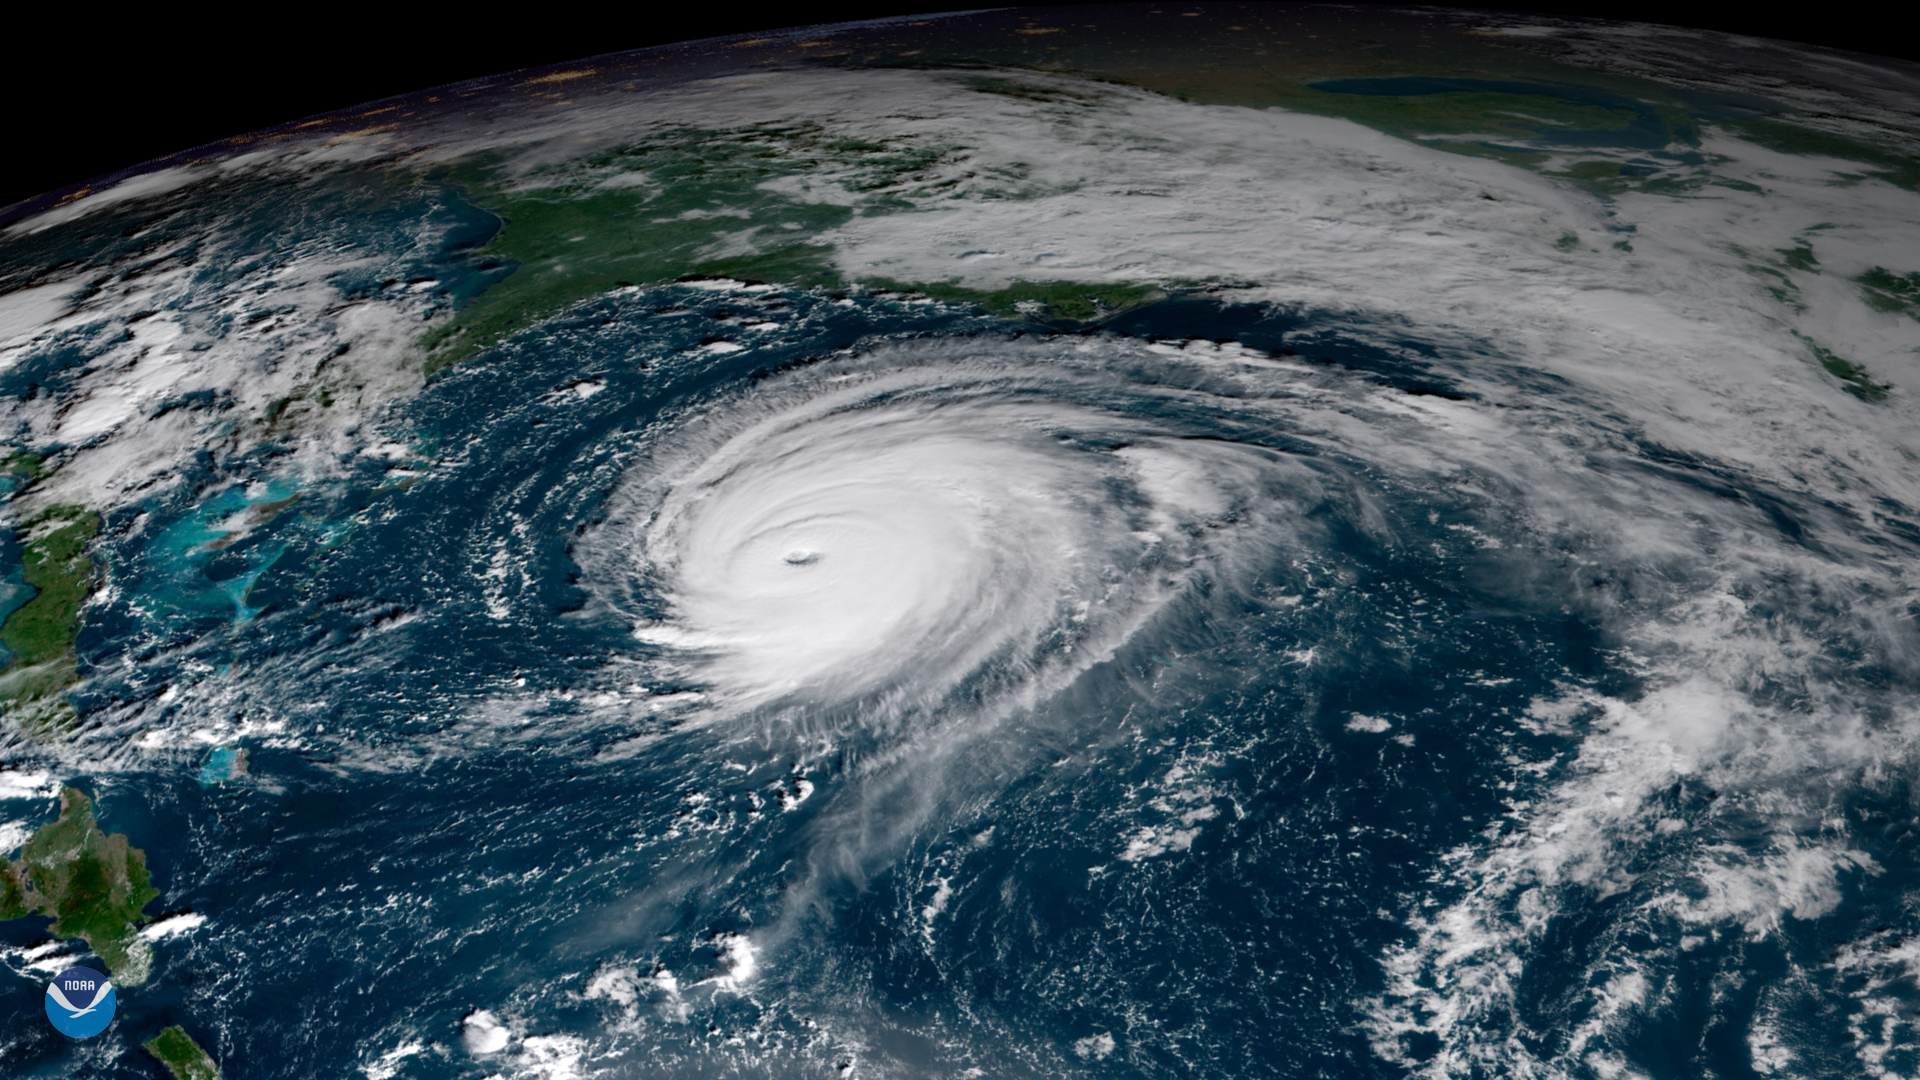 View of Hurricane Florence Approaching East Coast